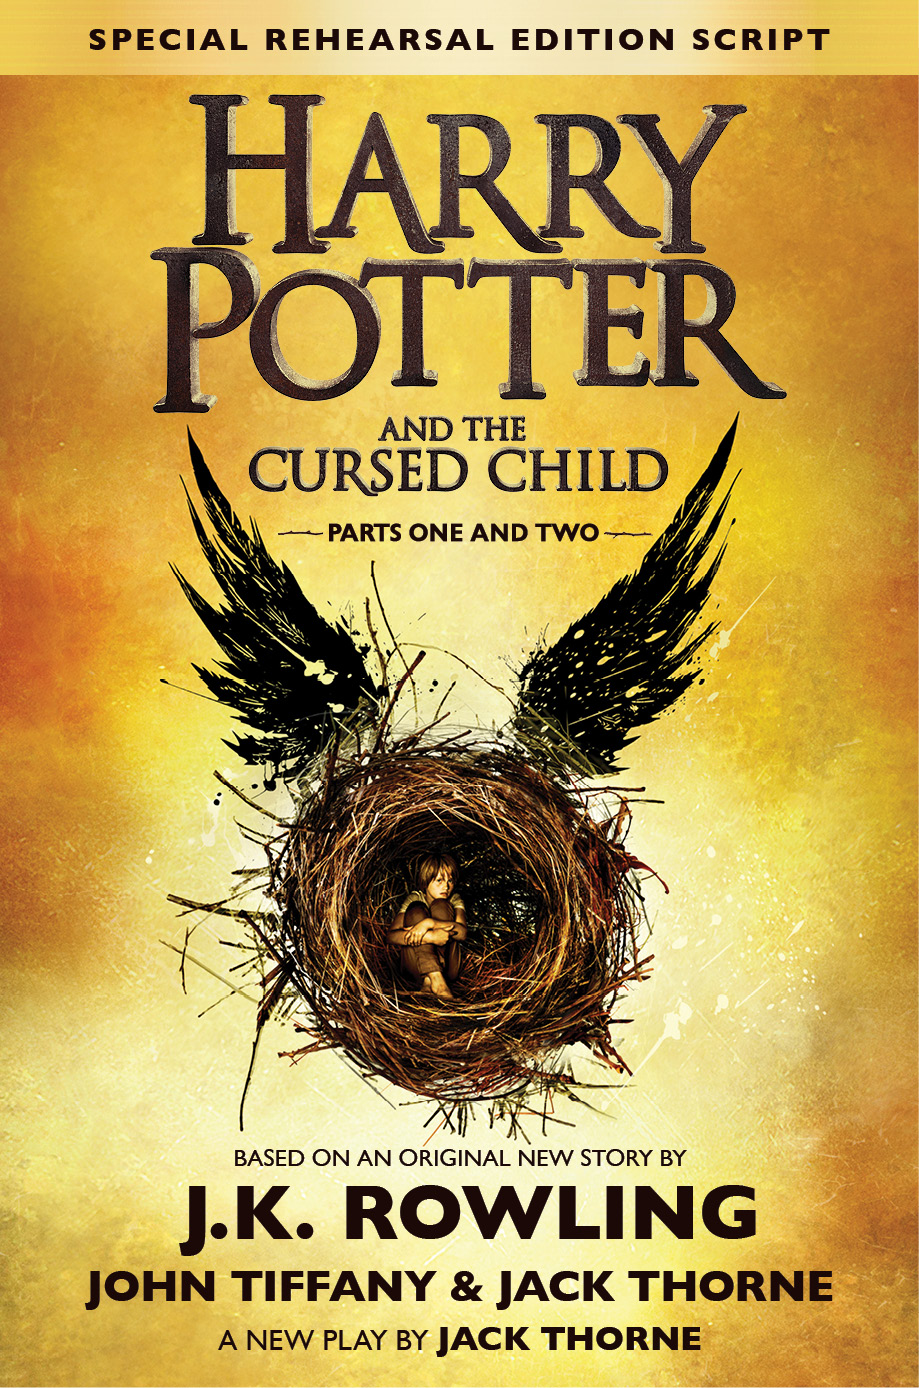 harry potter scholastic media room harry potter and the cursed child parts i ii special rehearsal edition